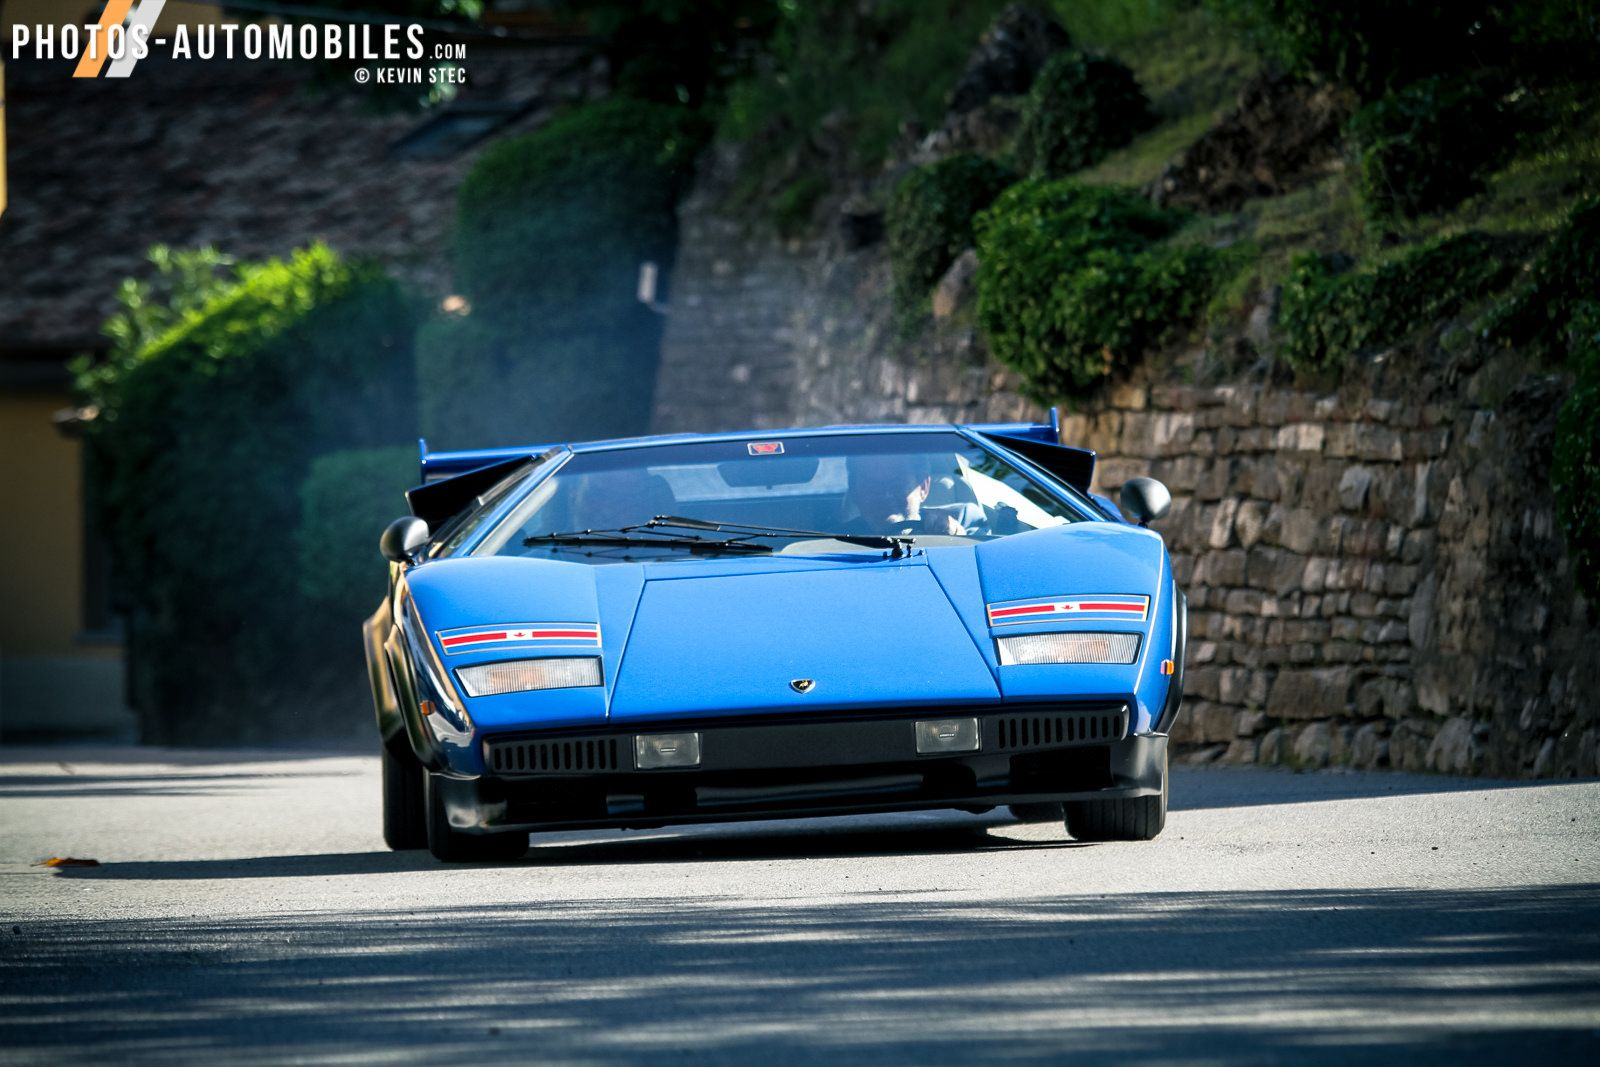 lamborghini lp400 countach walter wolf 1976. Black Bedroom Furniture Sets. Home Design Ideas